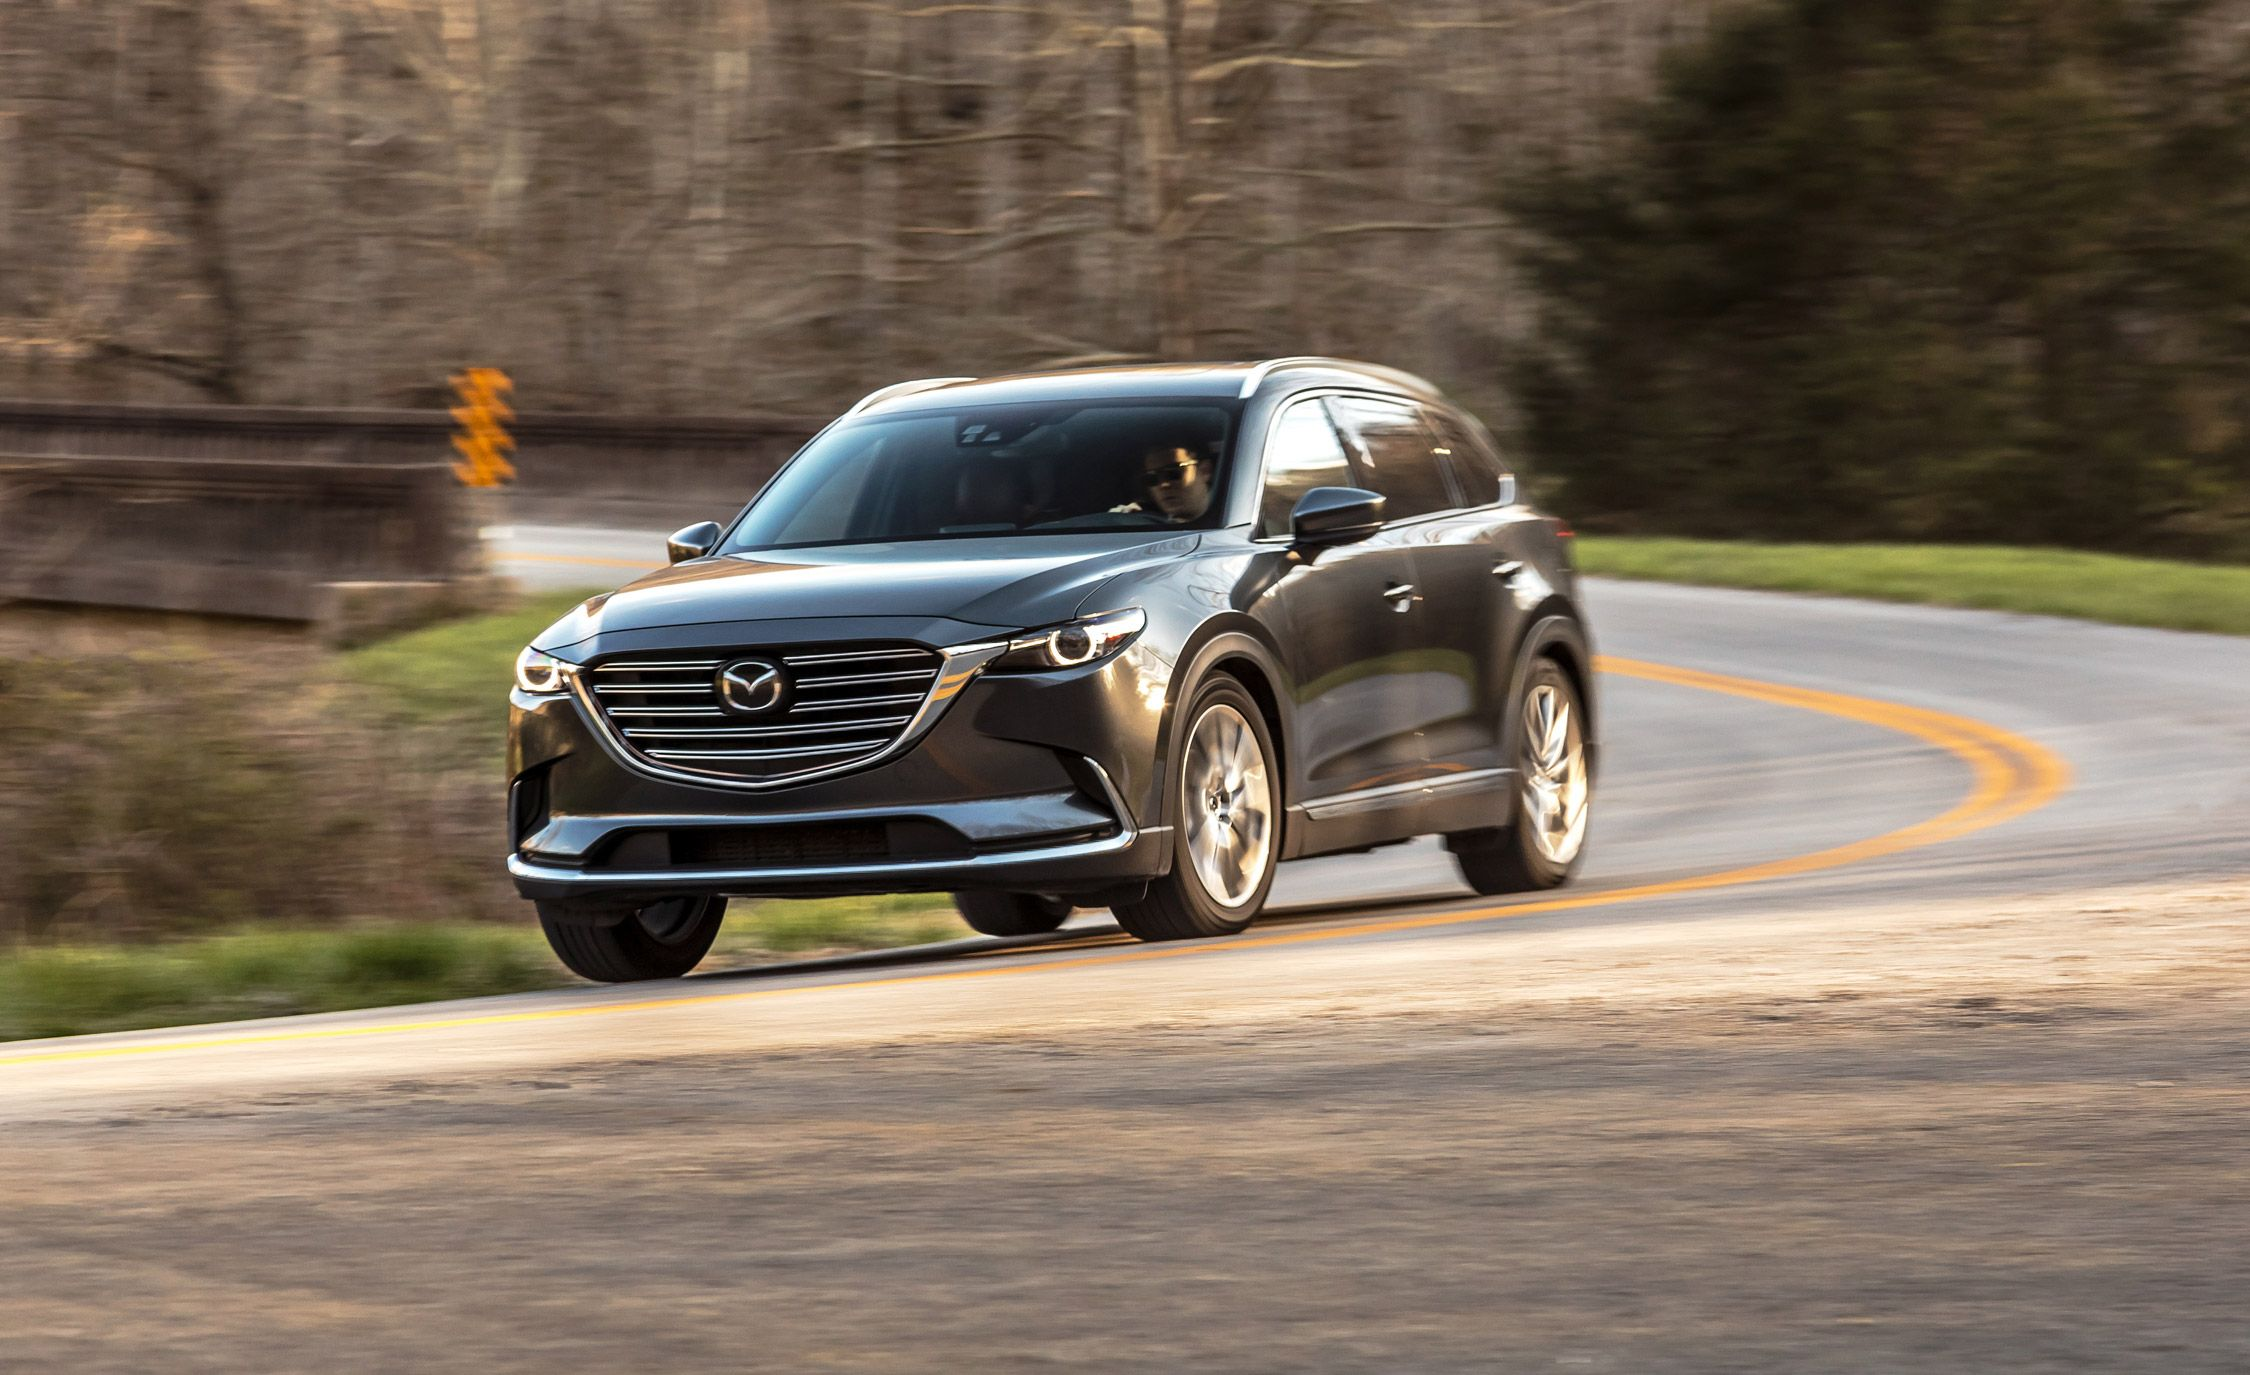 Mazda Cx 9 Trailer Wiring Diagram - Wiring Diagram Rows on vehicle wiring color codes, vehicle lights diagram, standard 7 wire trailer diagram, trailer light connector diagram, vehicle lighting diagram, vehicle air conditioning diagram, vehicle electrical diagram, trailer plug diagram,